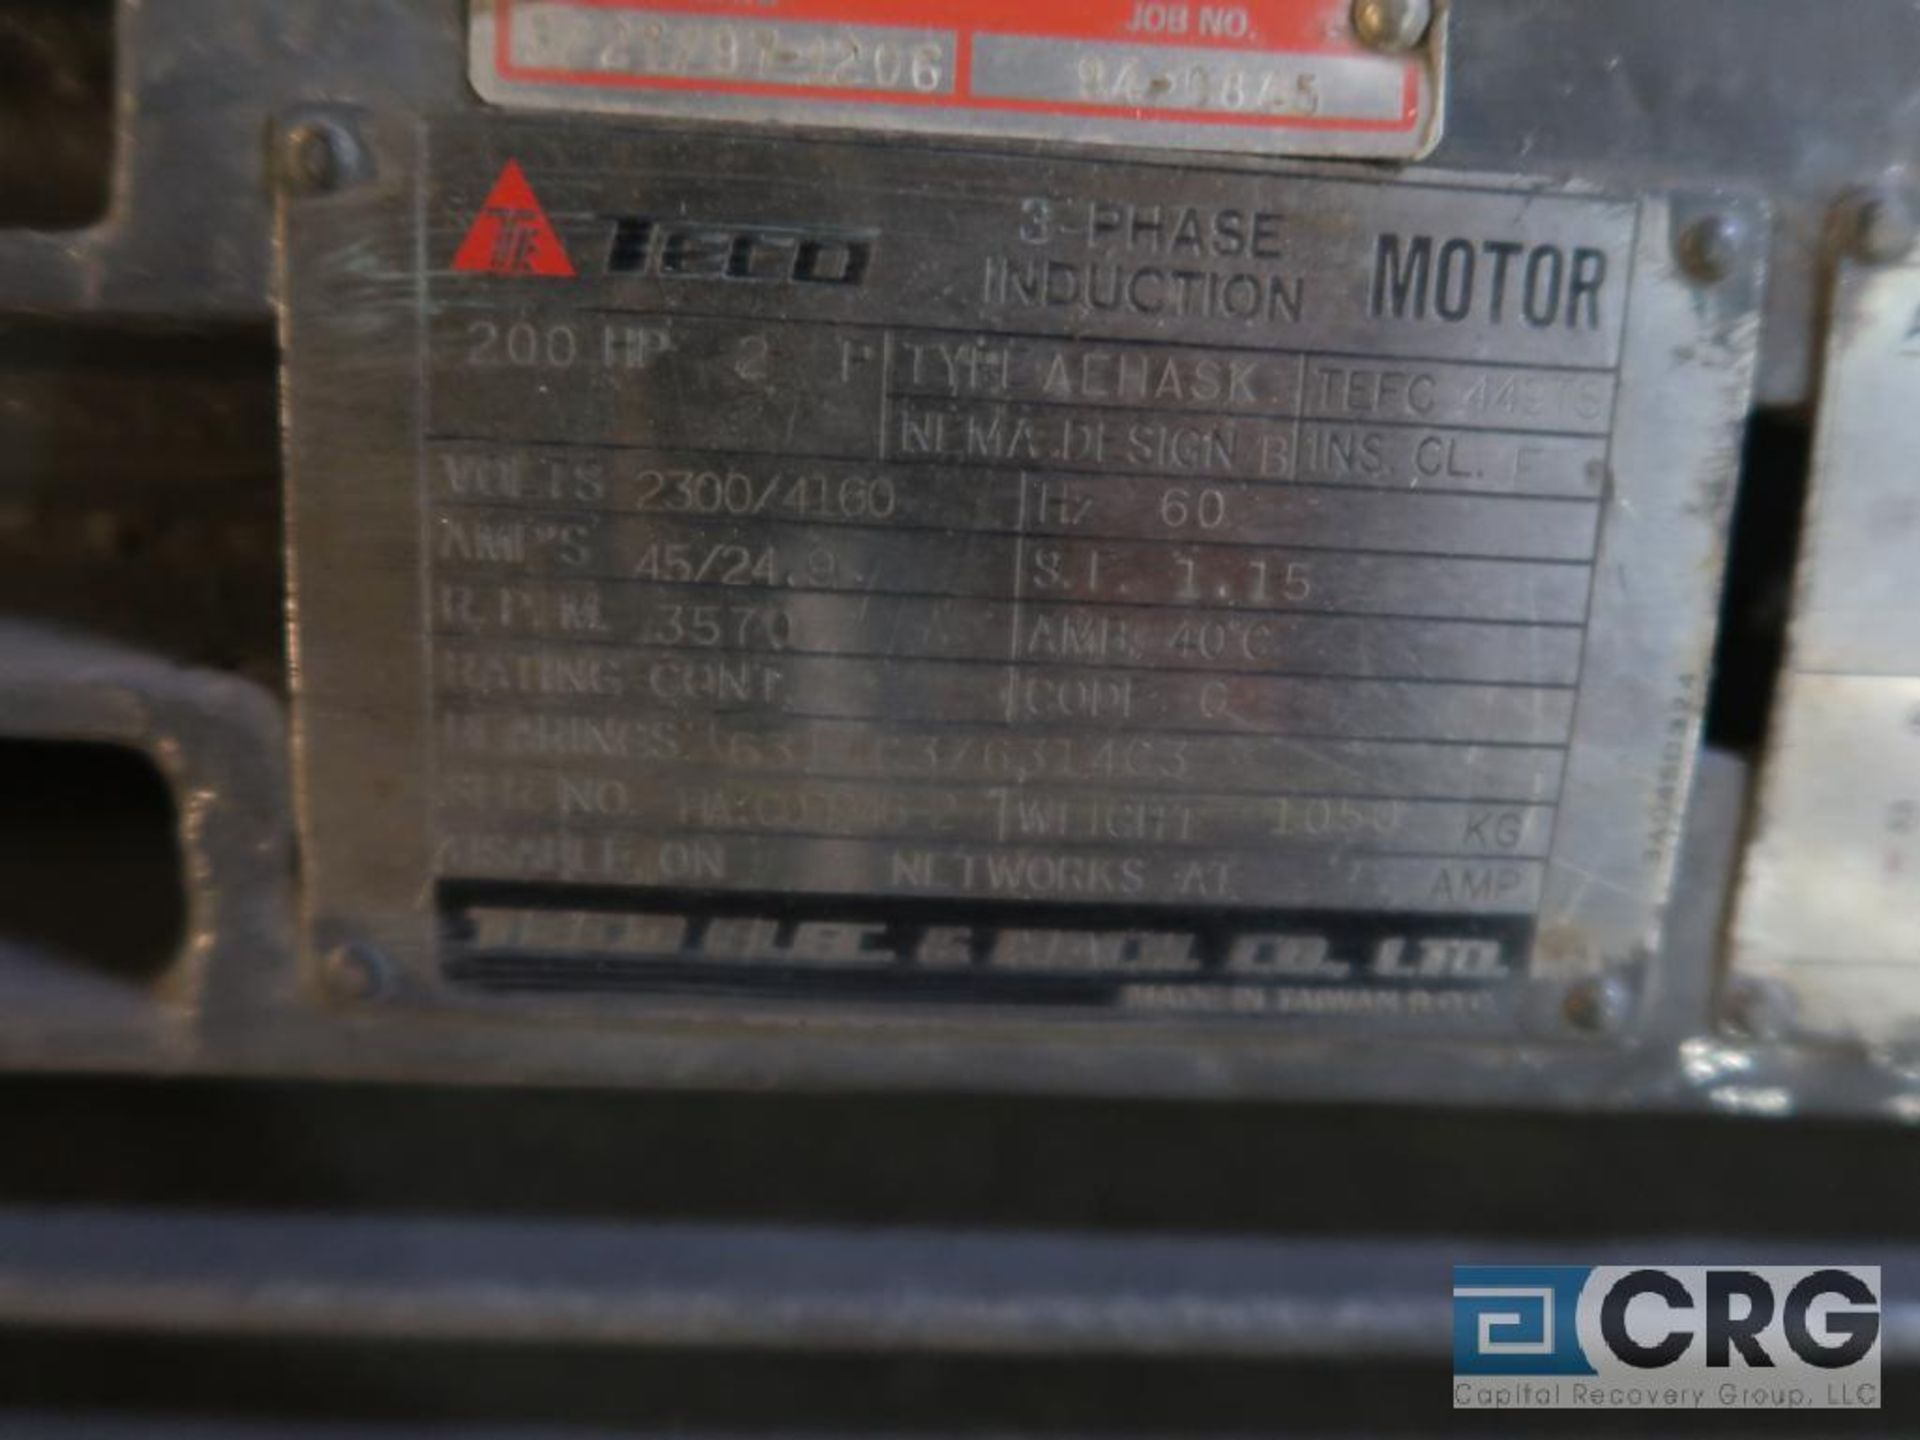 Teco Electric induction motor, 200 HP, 3,570 RPMs, 2,300/4,160 volt, 3 ph., 449TS frame (Finish - Image 2 of 2